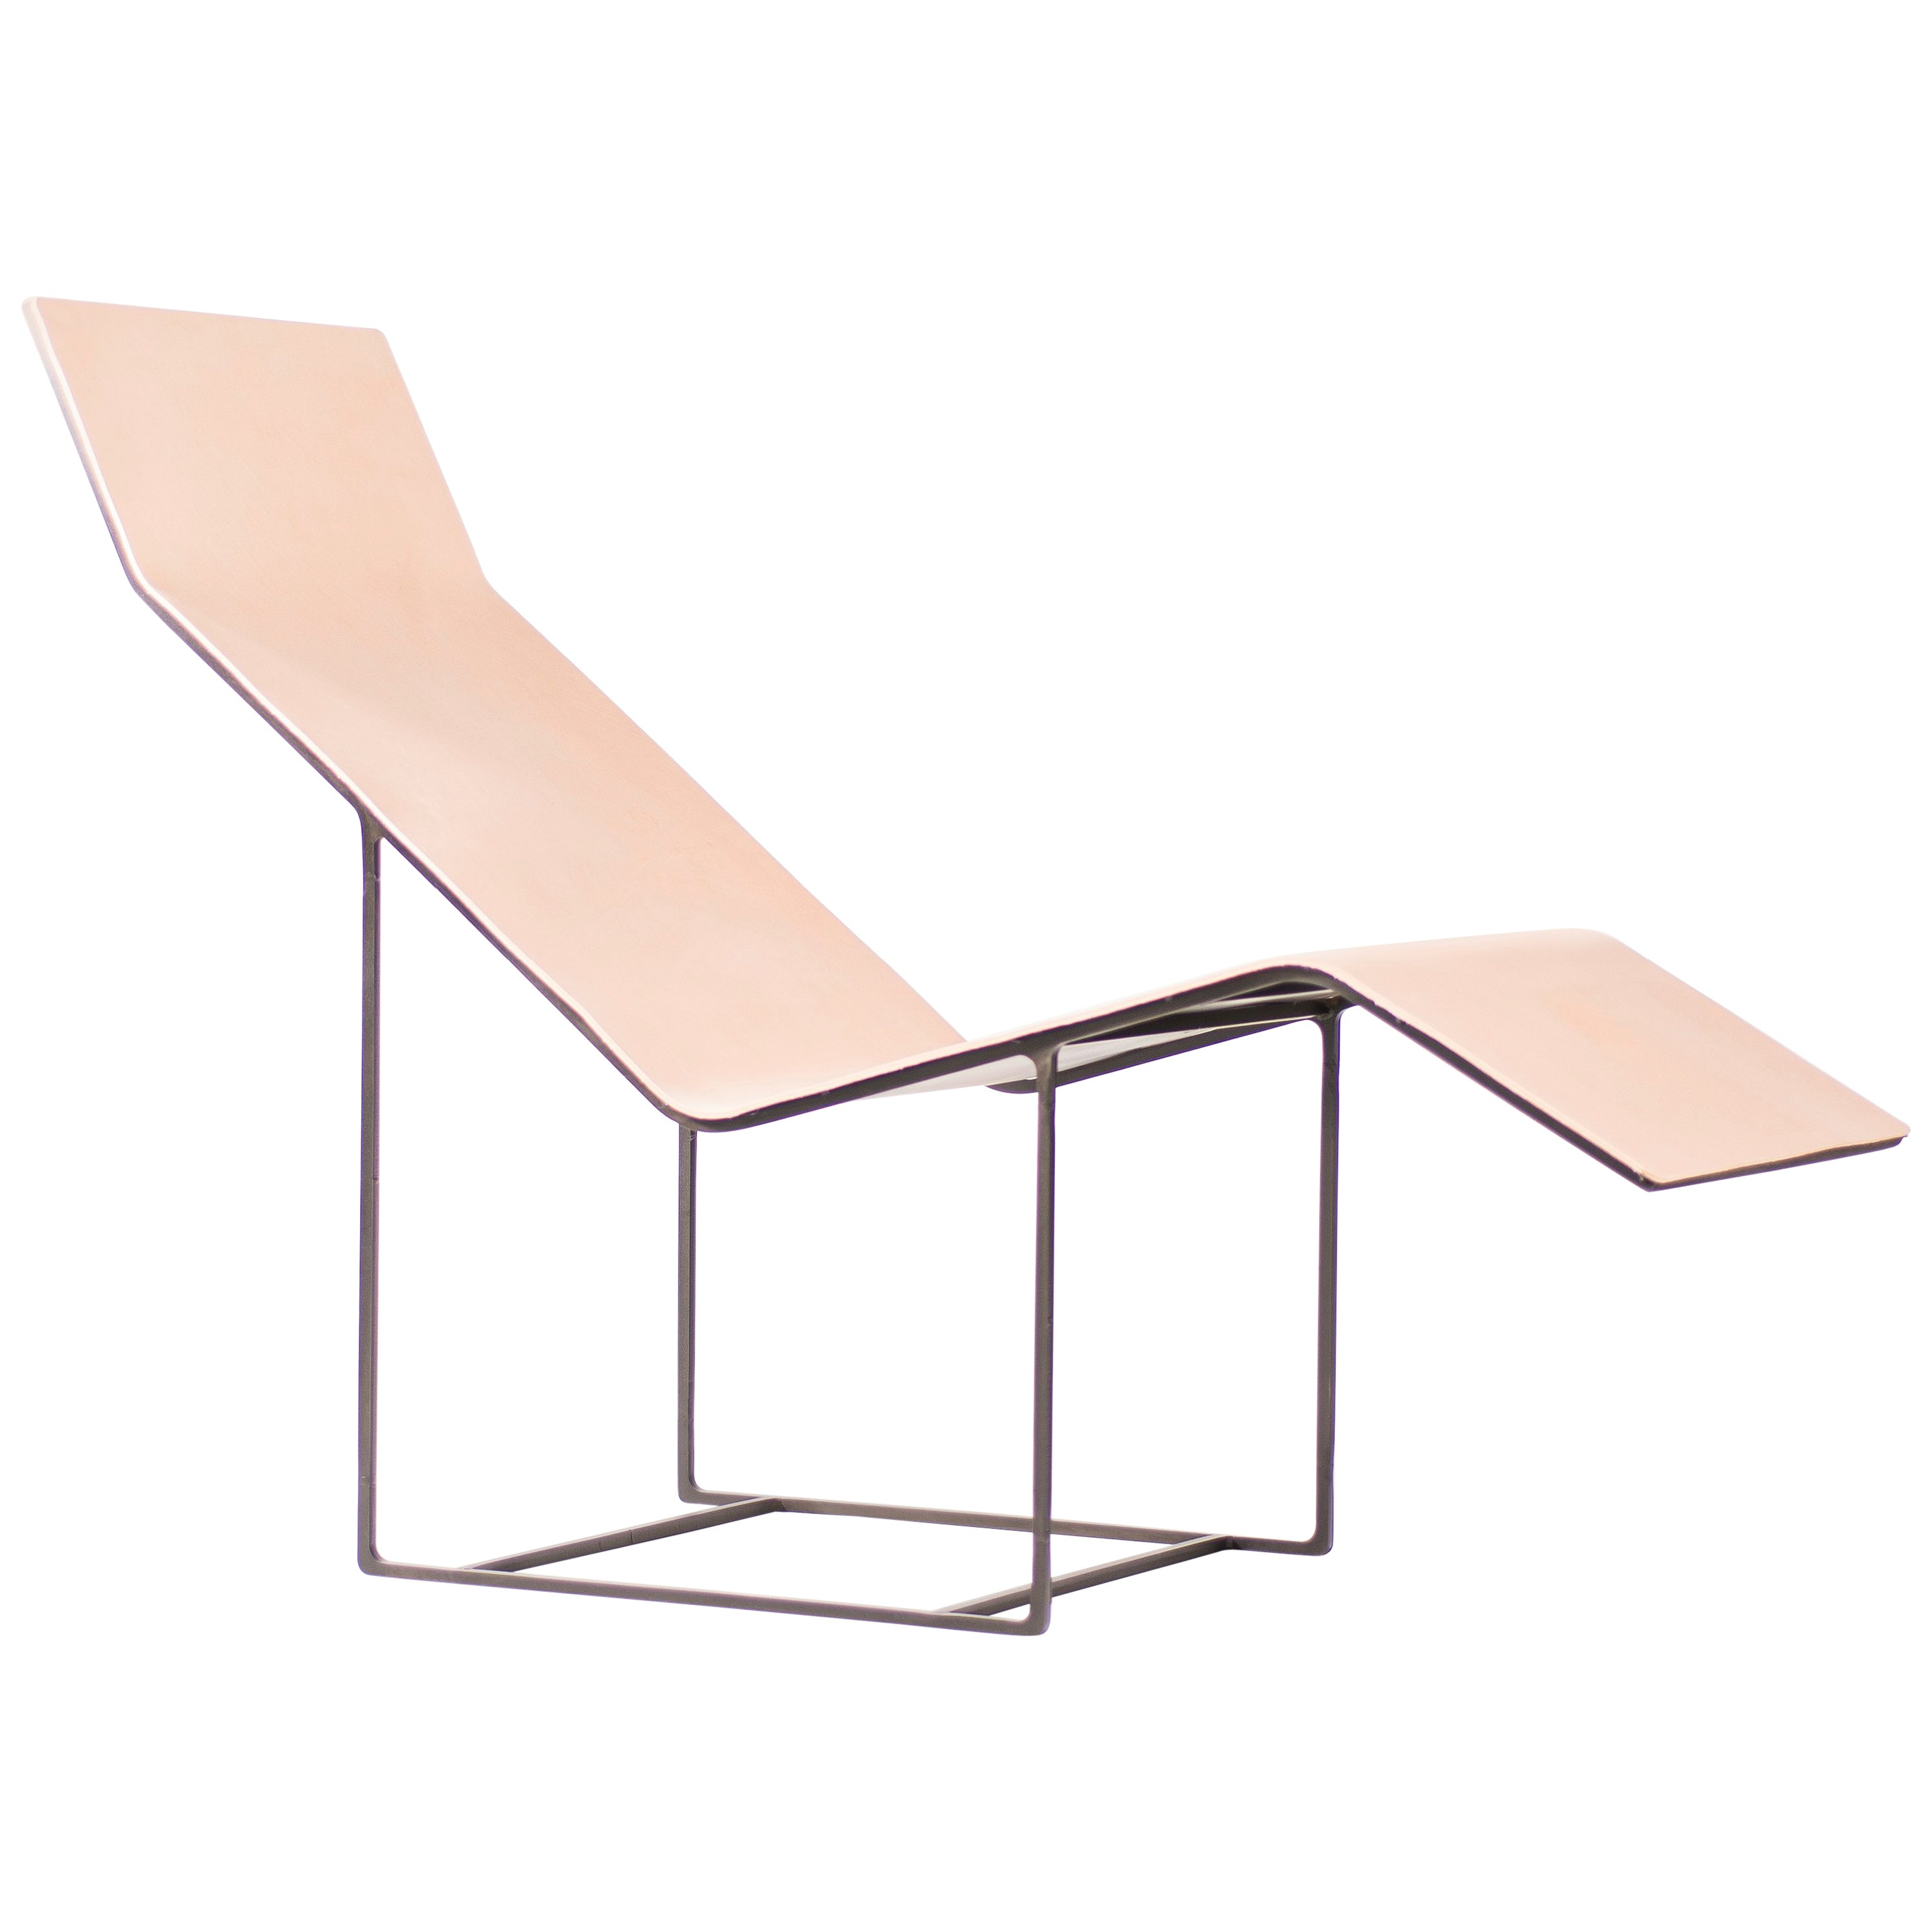 Miraculous Montauk Lounge Chairs 9 For Sale At 1Stdibs Andrewgaddart Wooden Chair Designs For Living Room Andrewgaddartcom